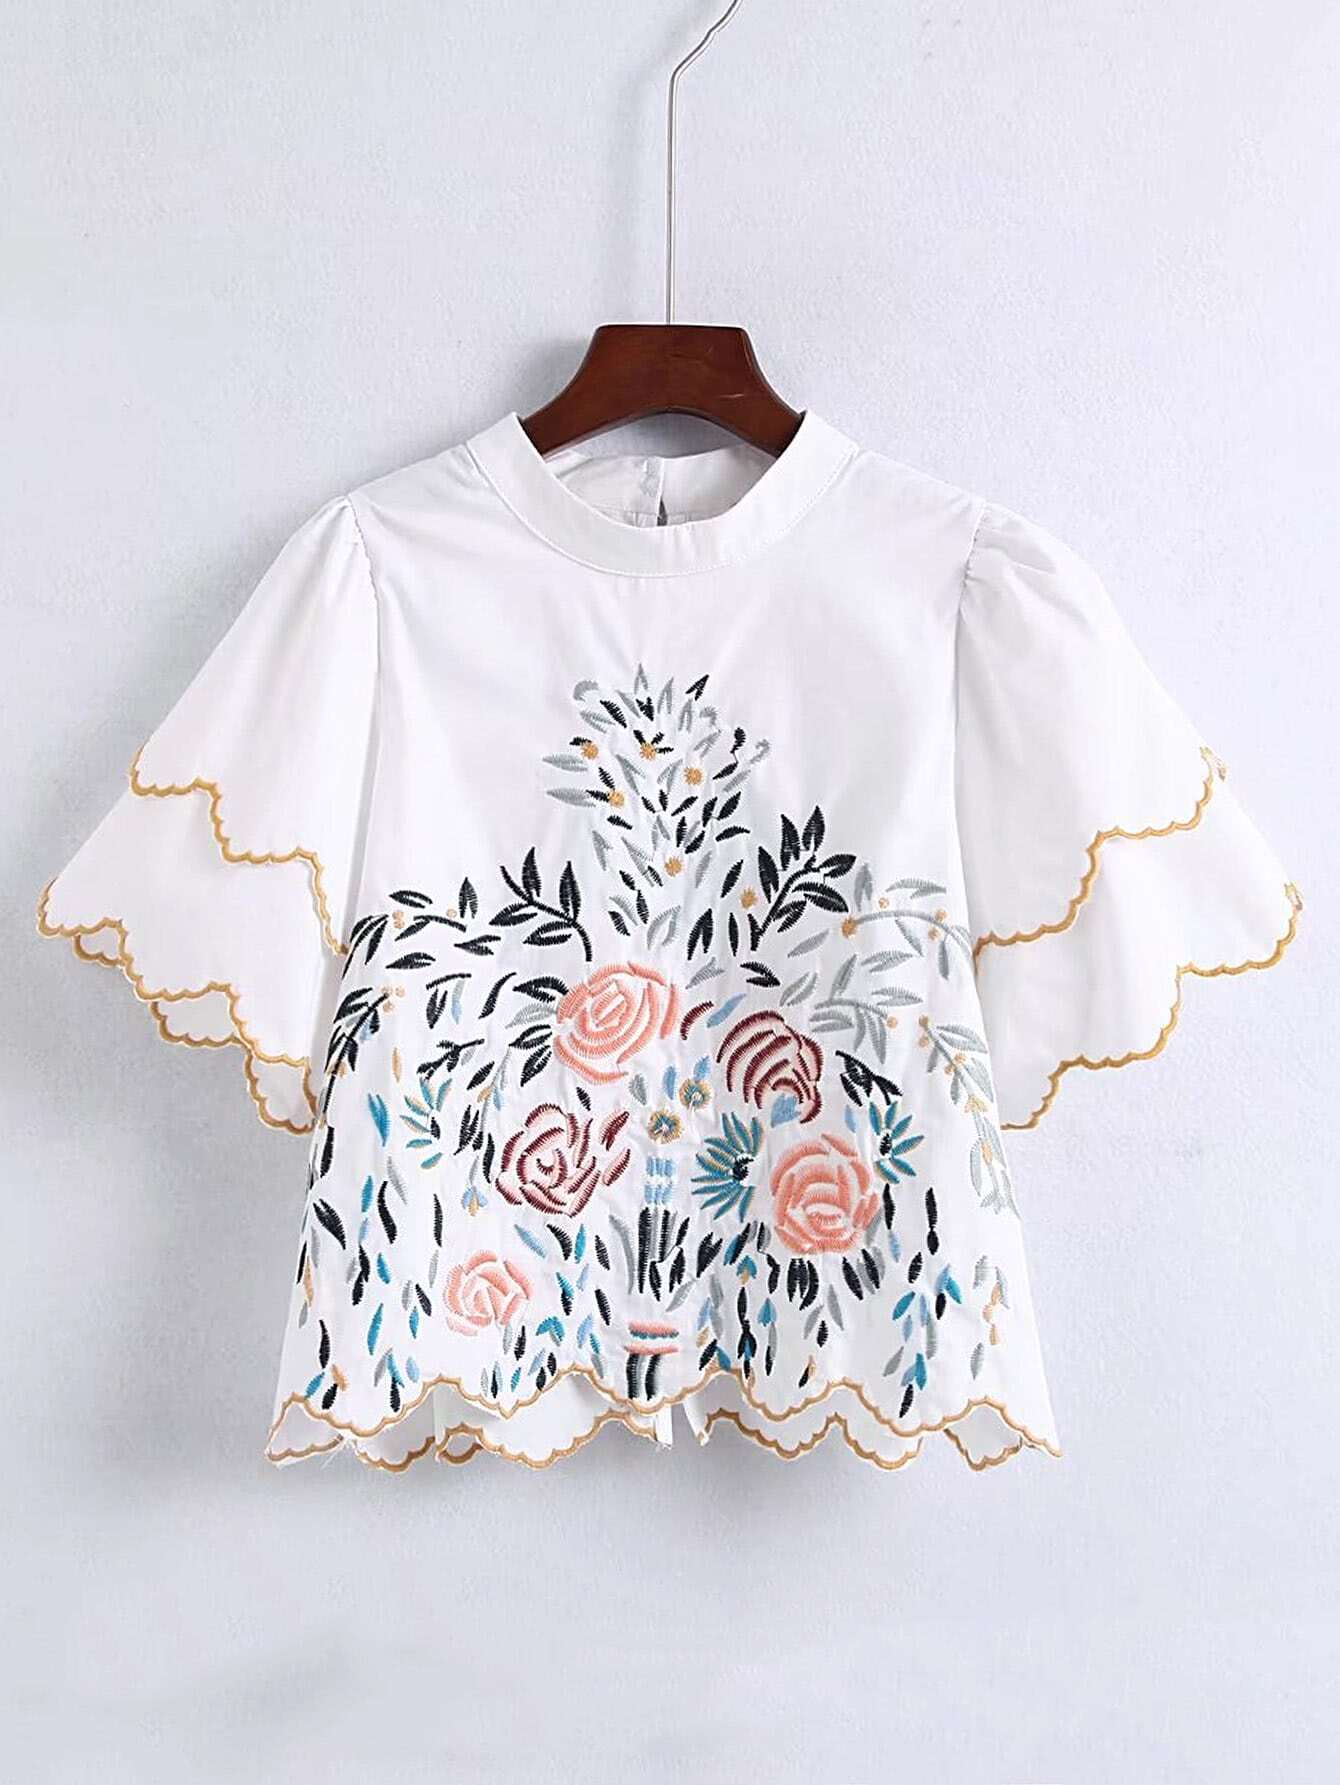 Scalloped Trim Embroidered Detail Blouse embroidered tape detail beading trim bardot top